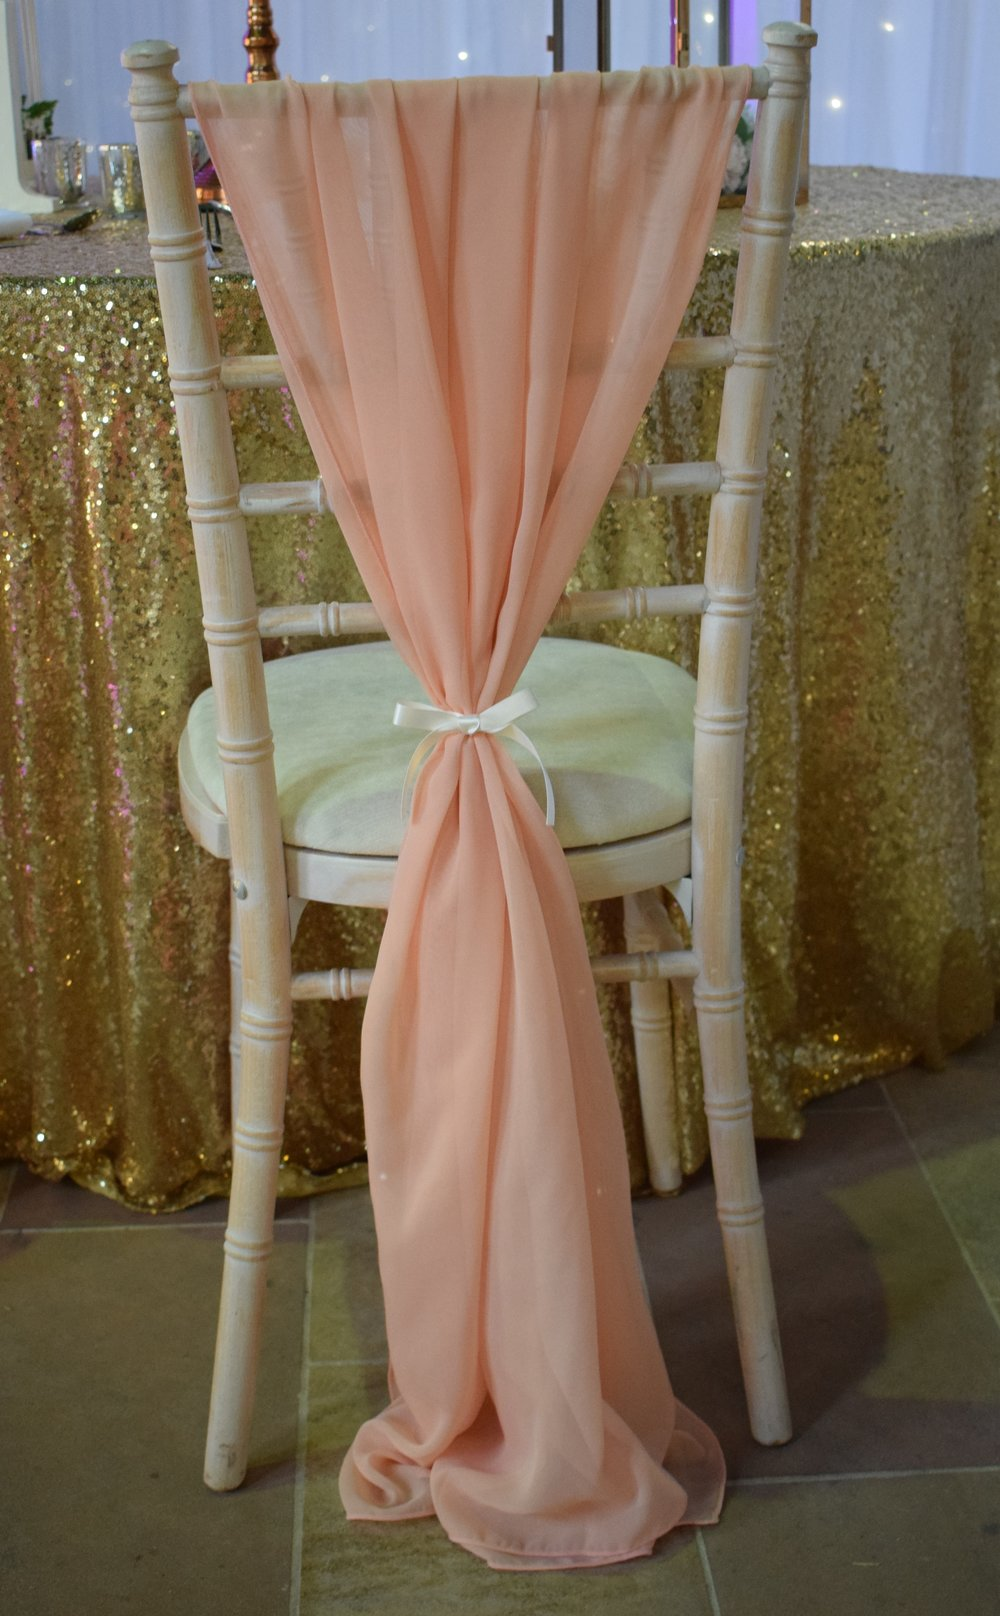 Chiffon Drape/ Drop Sash Hire Nottingham